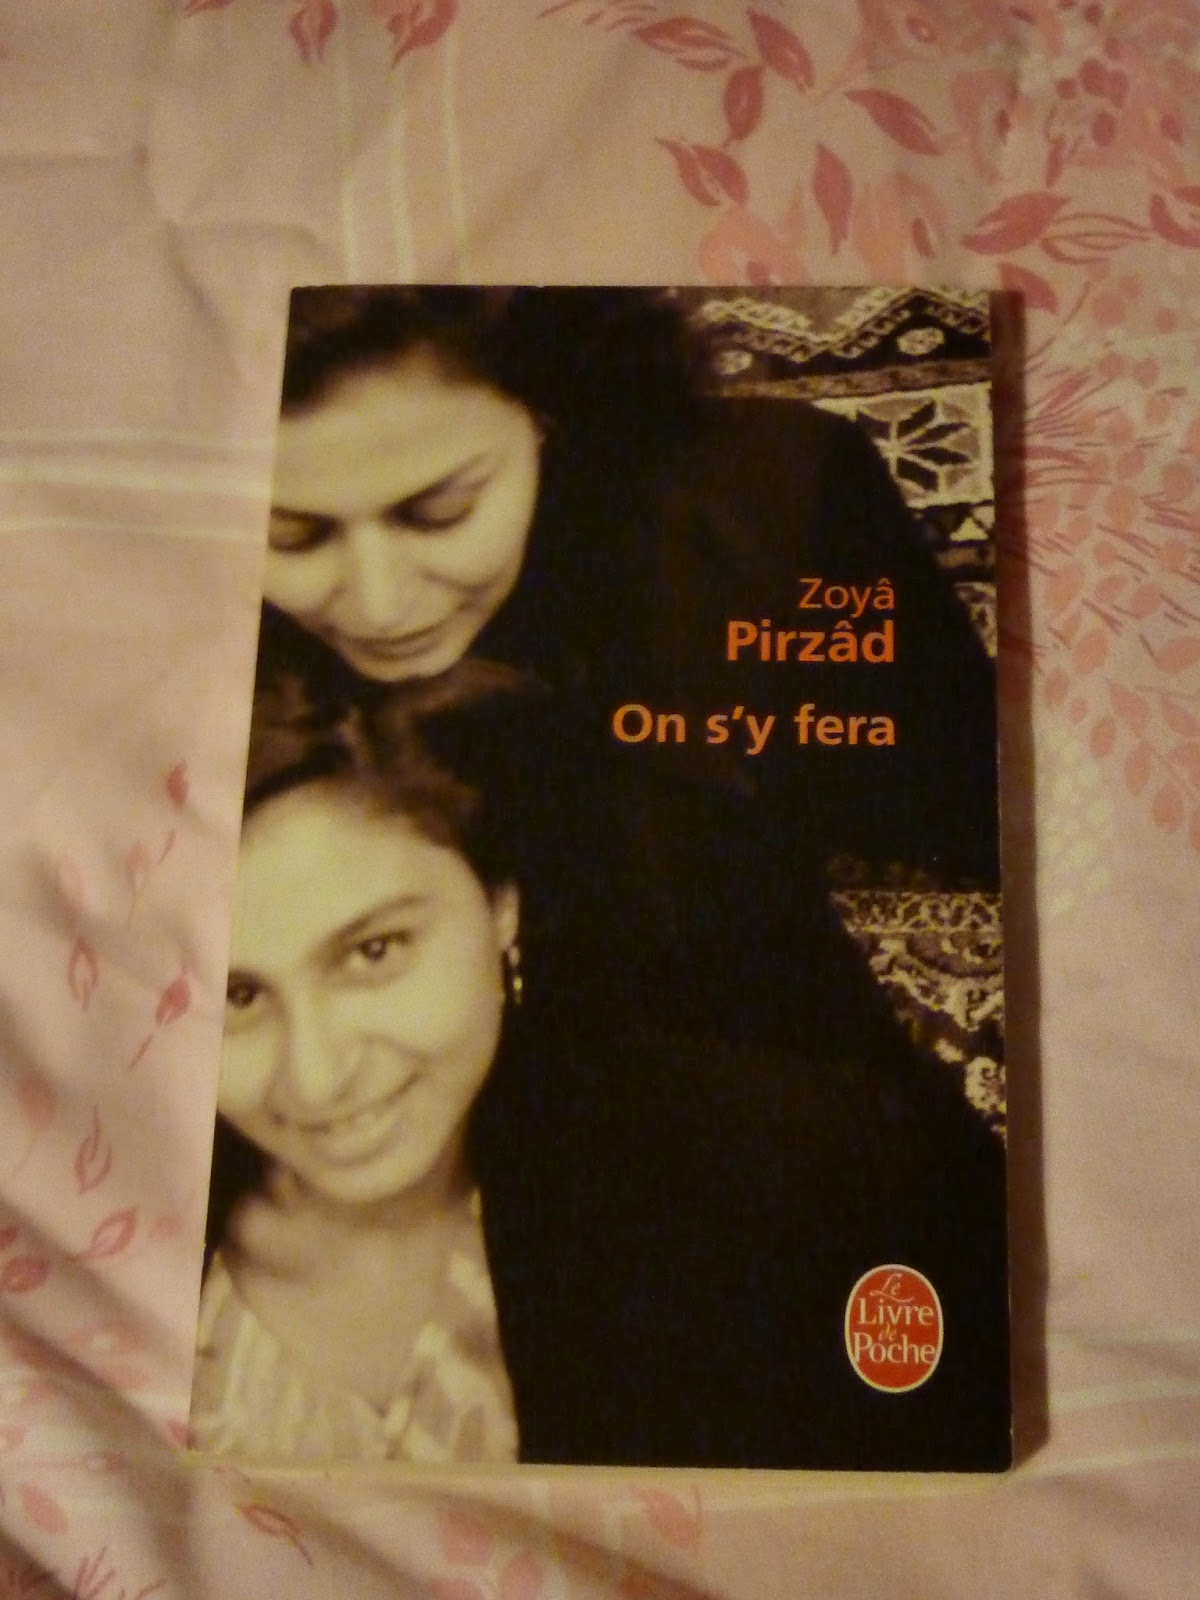 On s'y fera - Zoya Pirzad